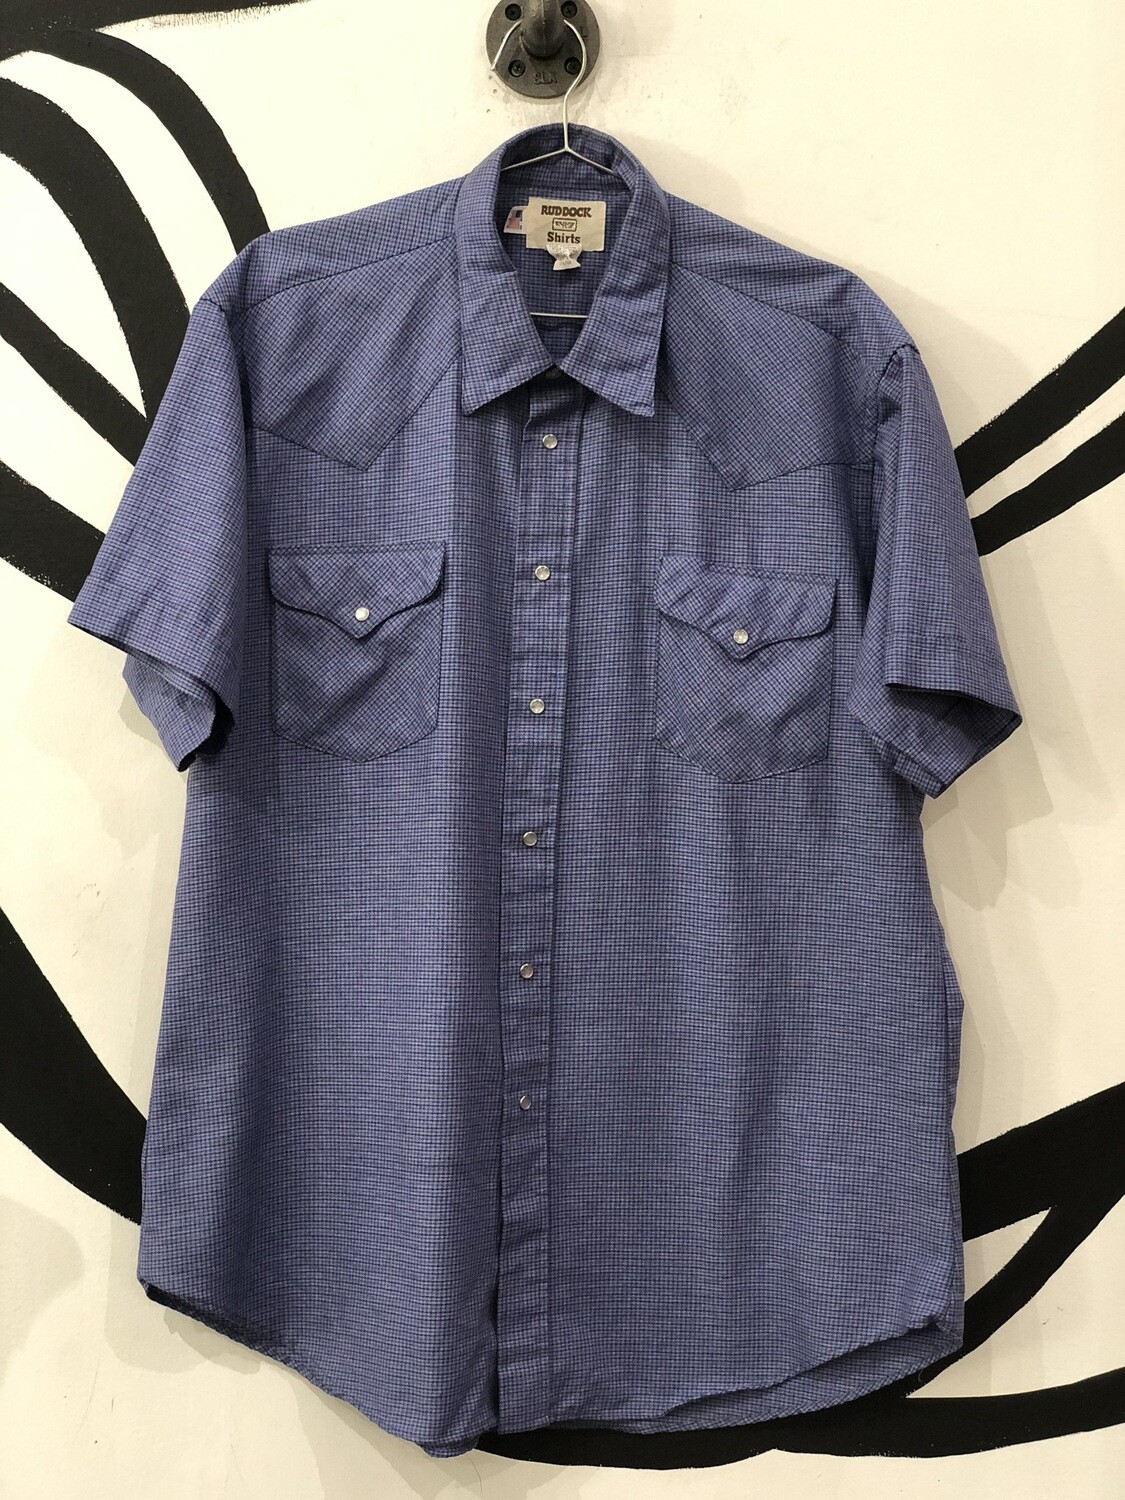 Ruddock Shirts Pearl Snap Short Sleeve Button Up Top Size 17 1/2